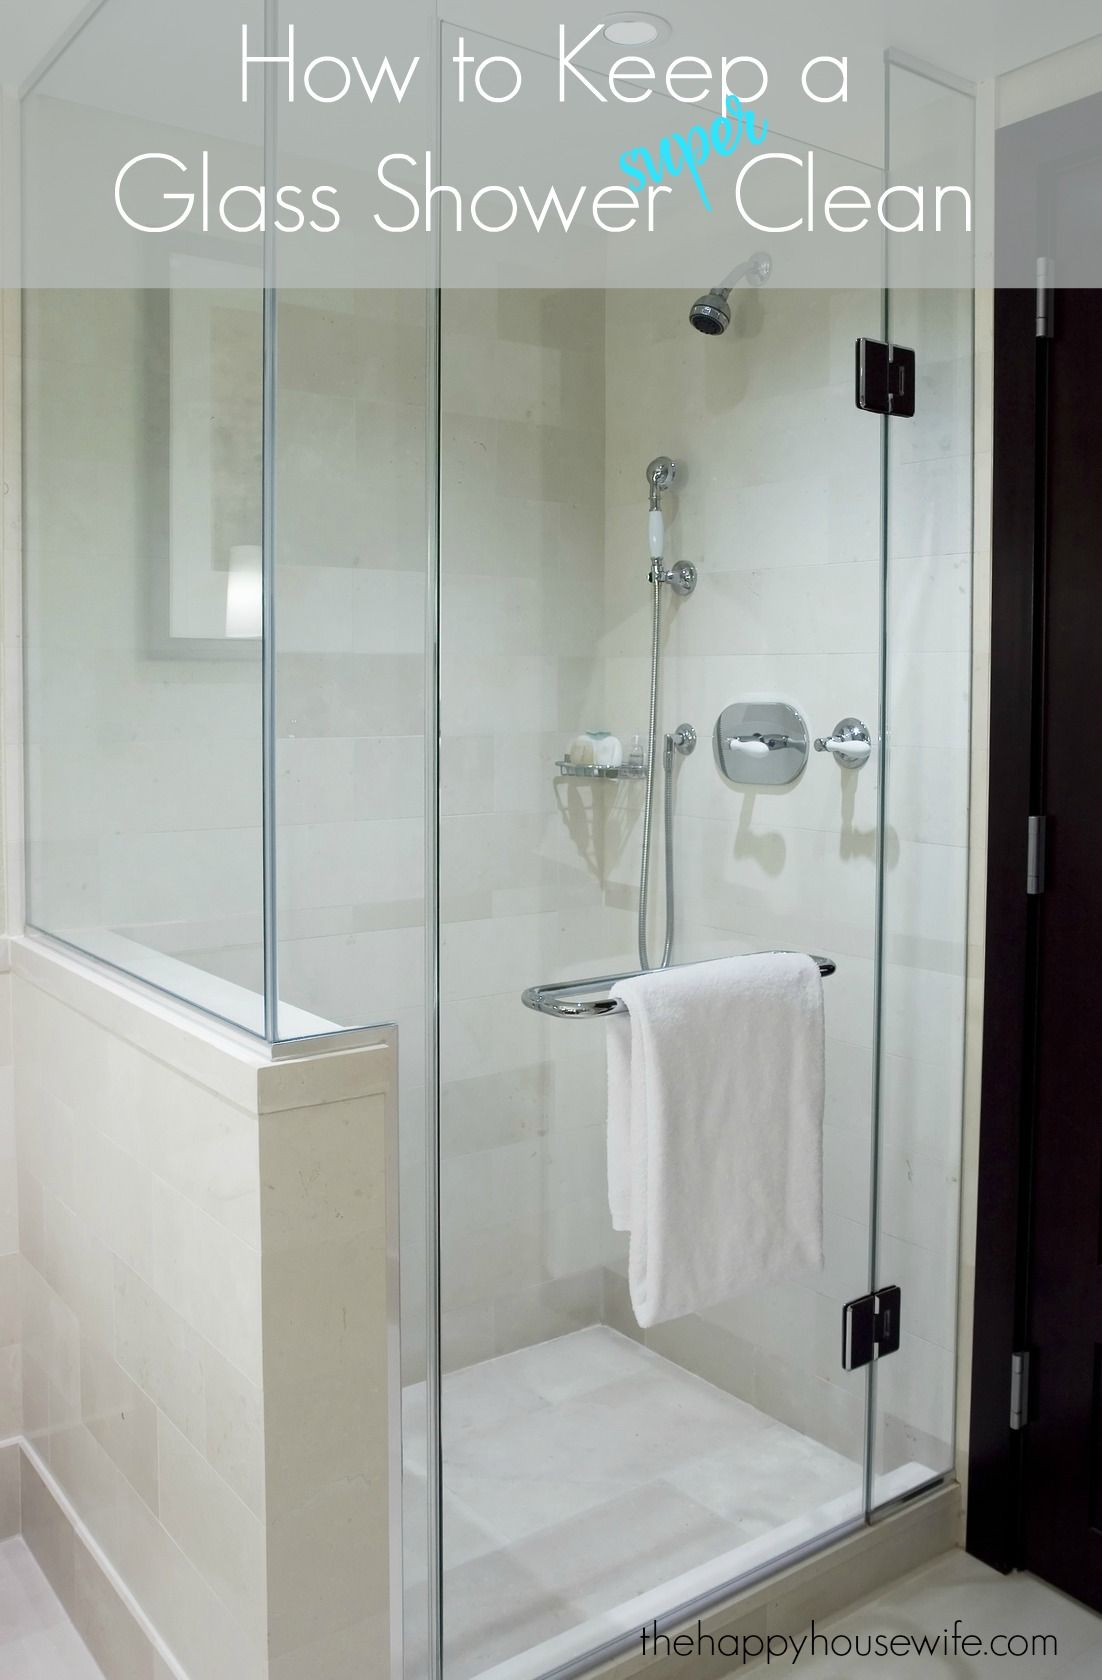 How To Keep A Glass Shower Clean With Images Bathroom Remodel